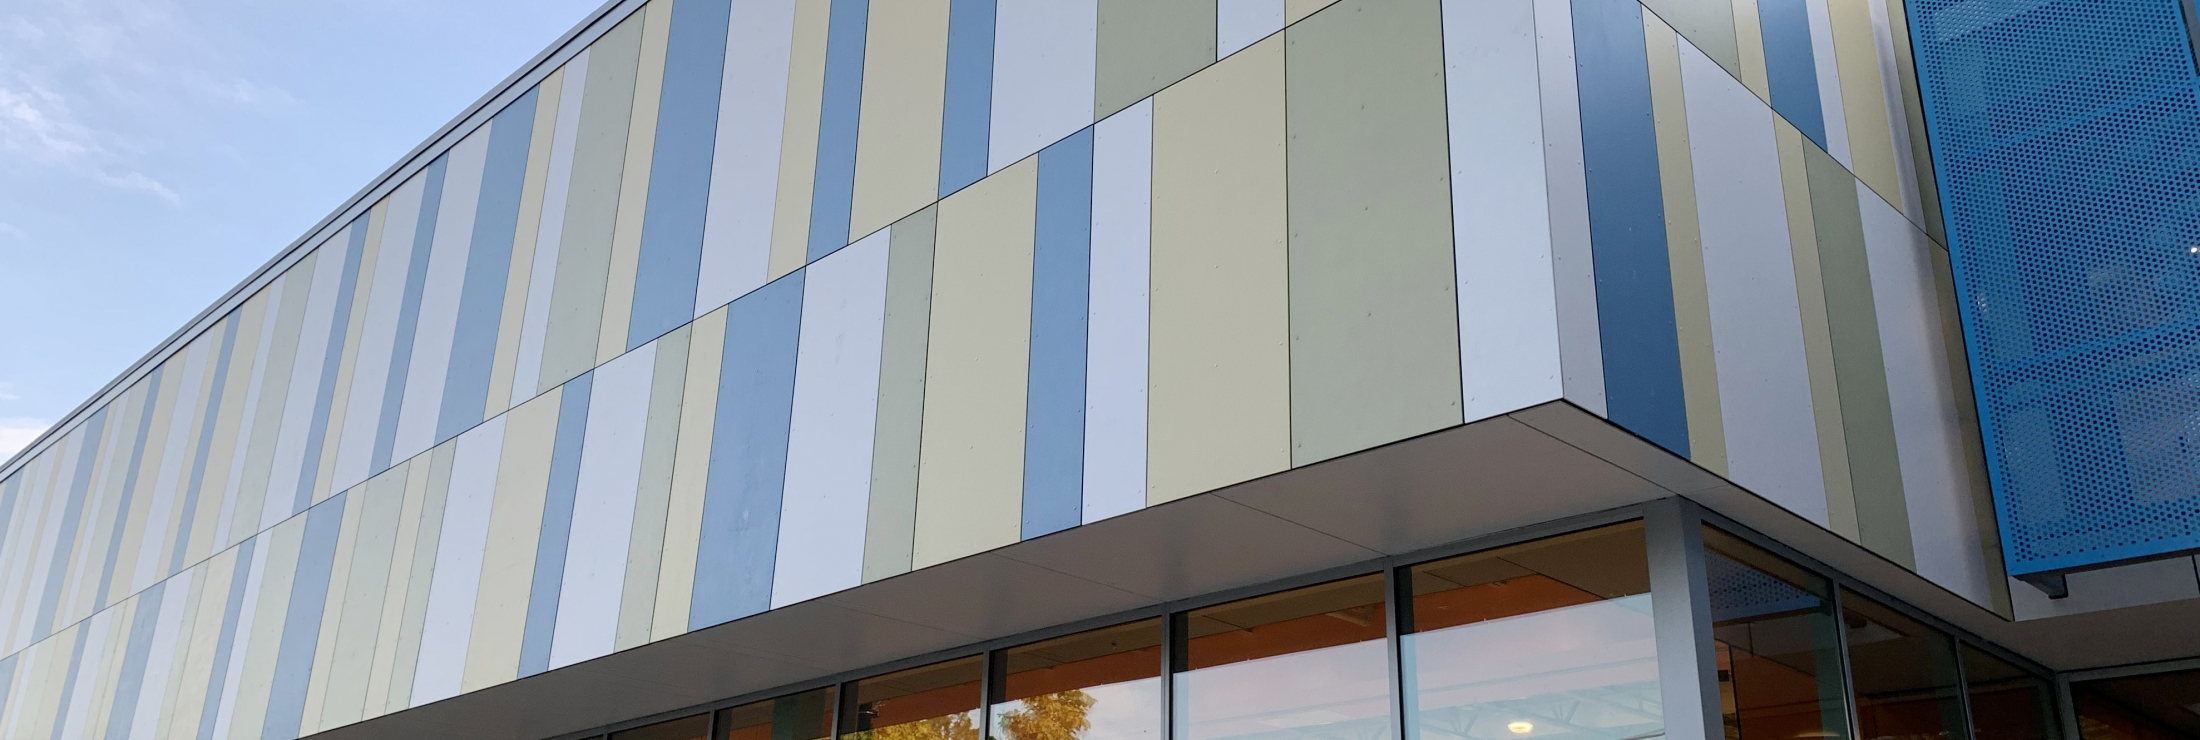 Cladding Corp Fiber Cement Rainscreen & ECO Cladding VZ.10 Subframing Cladding System